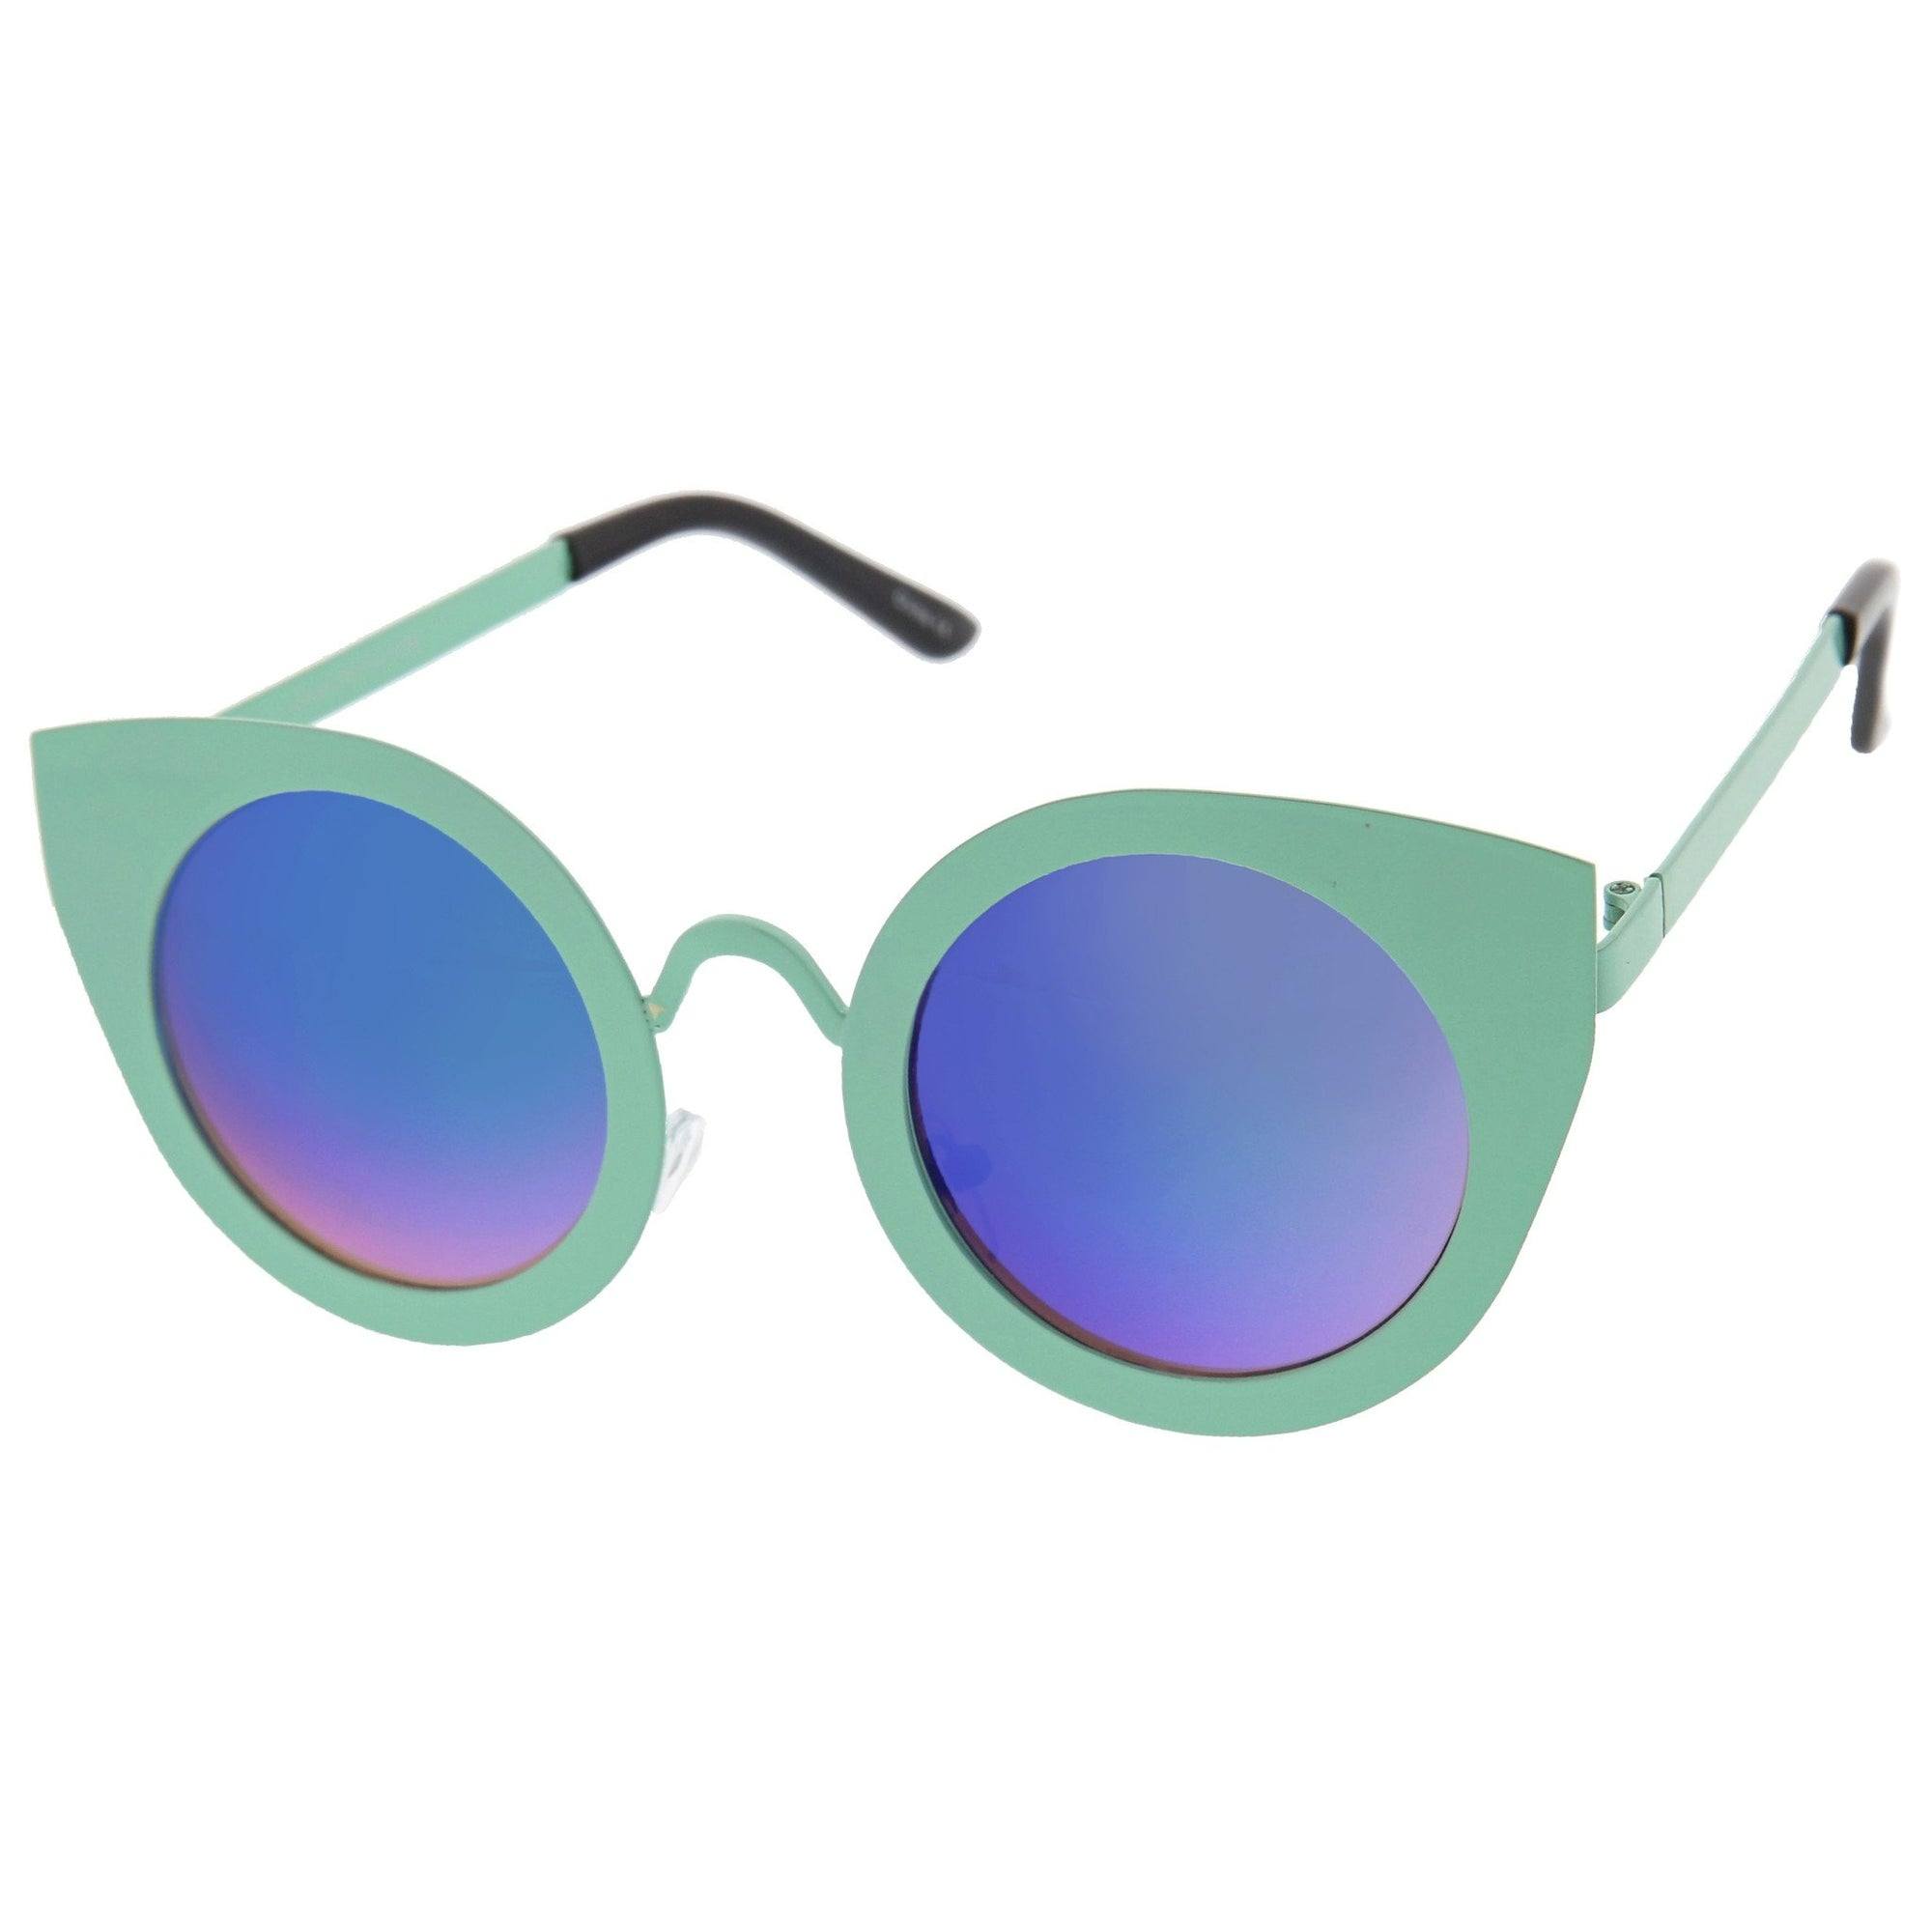 f1fe25060 Women's Multi Color Mirrored Lens Round Cat Eye Sunglasses - zeroUV